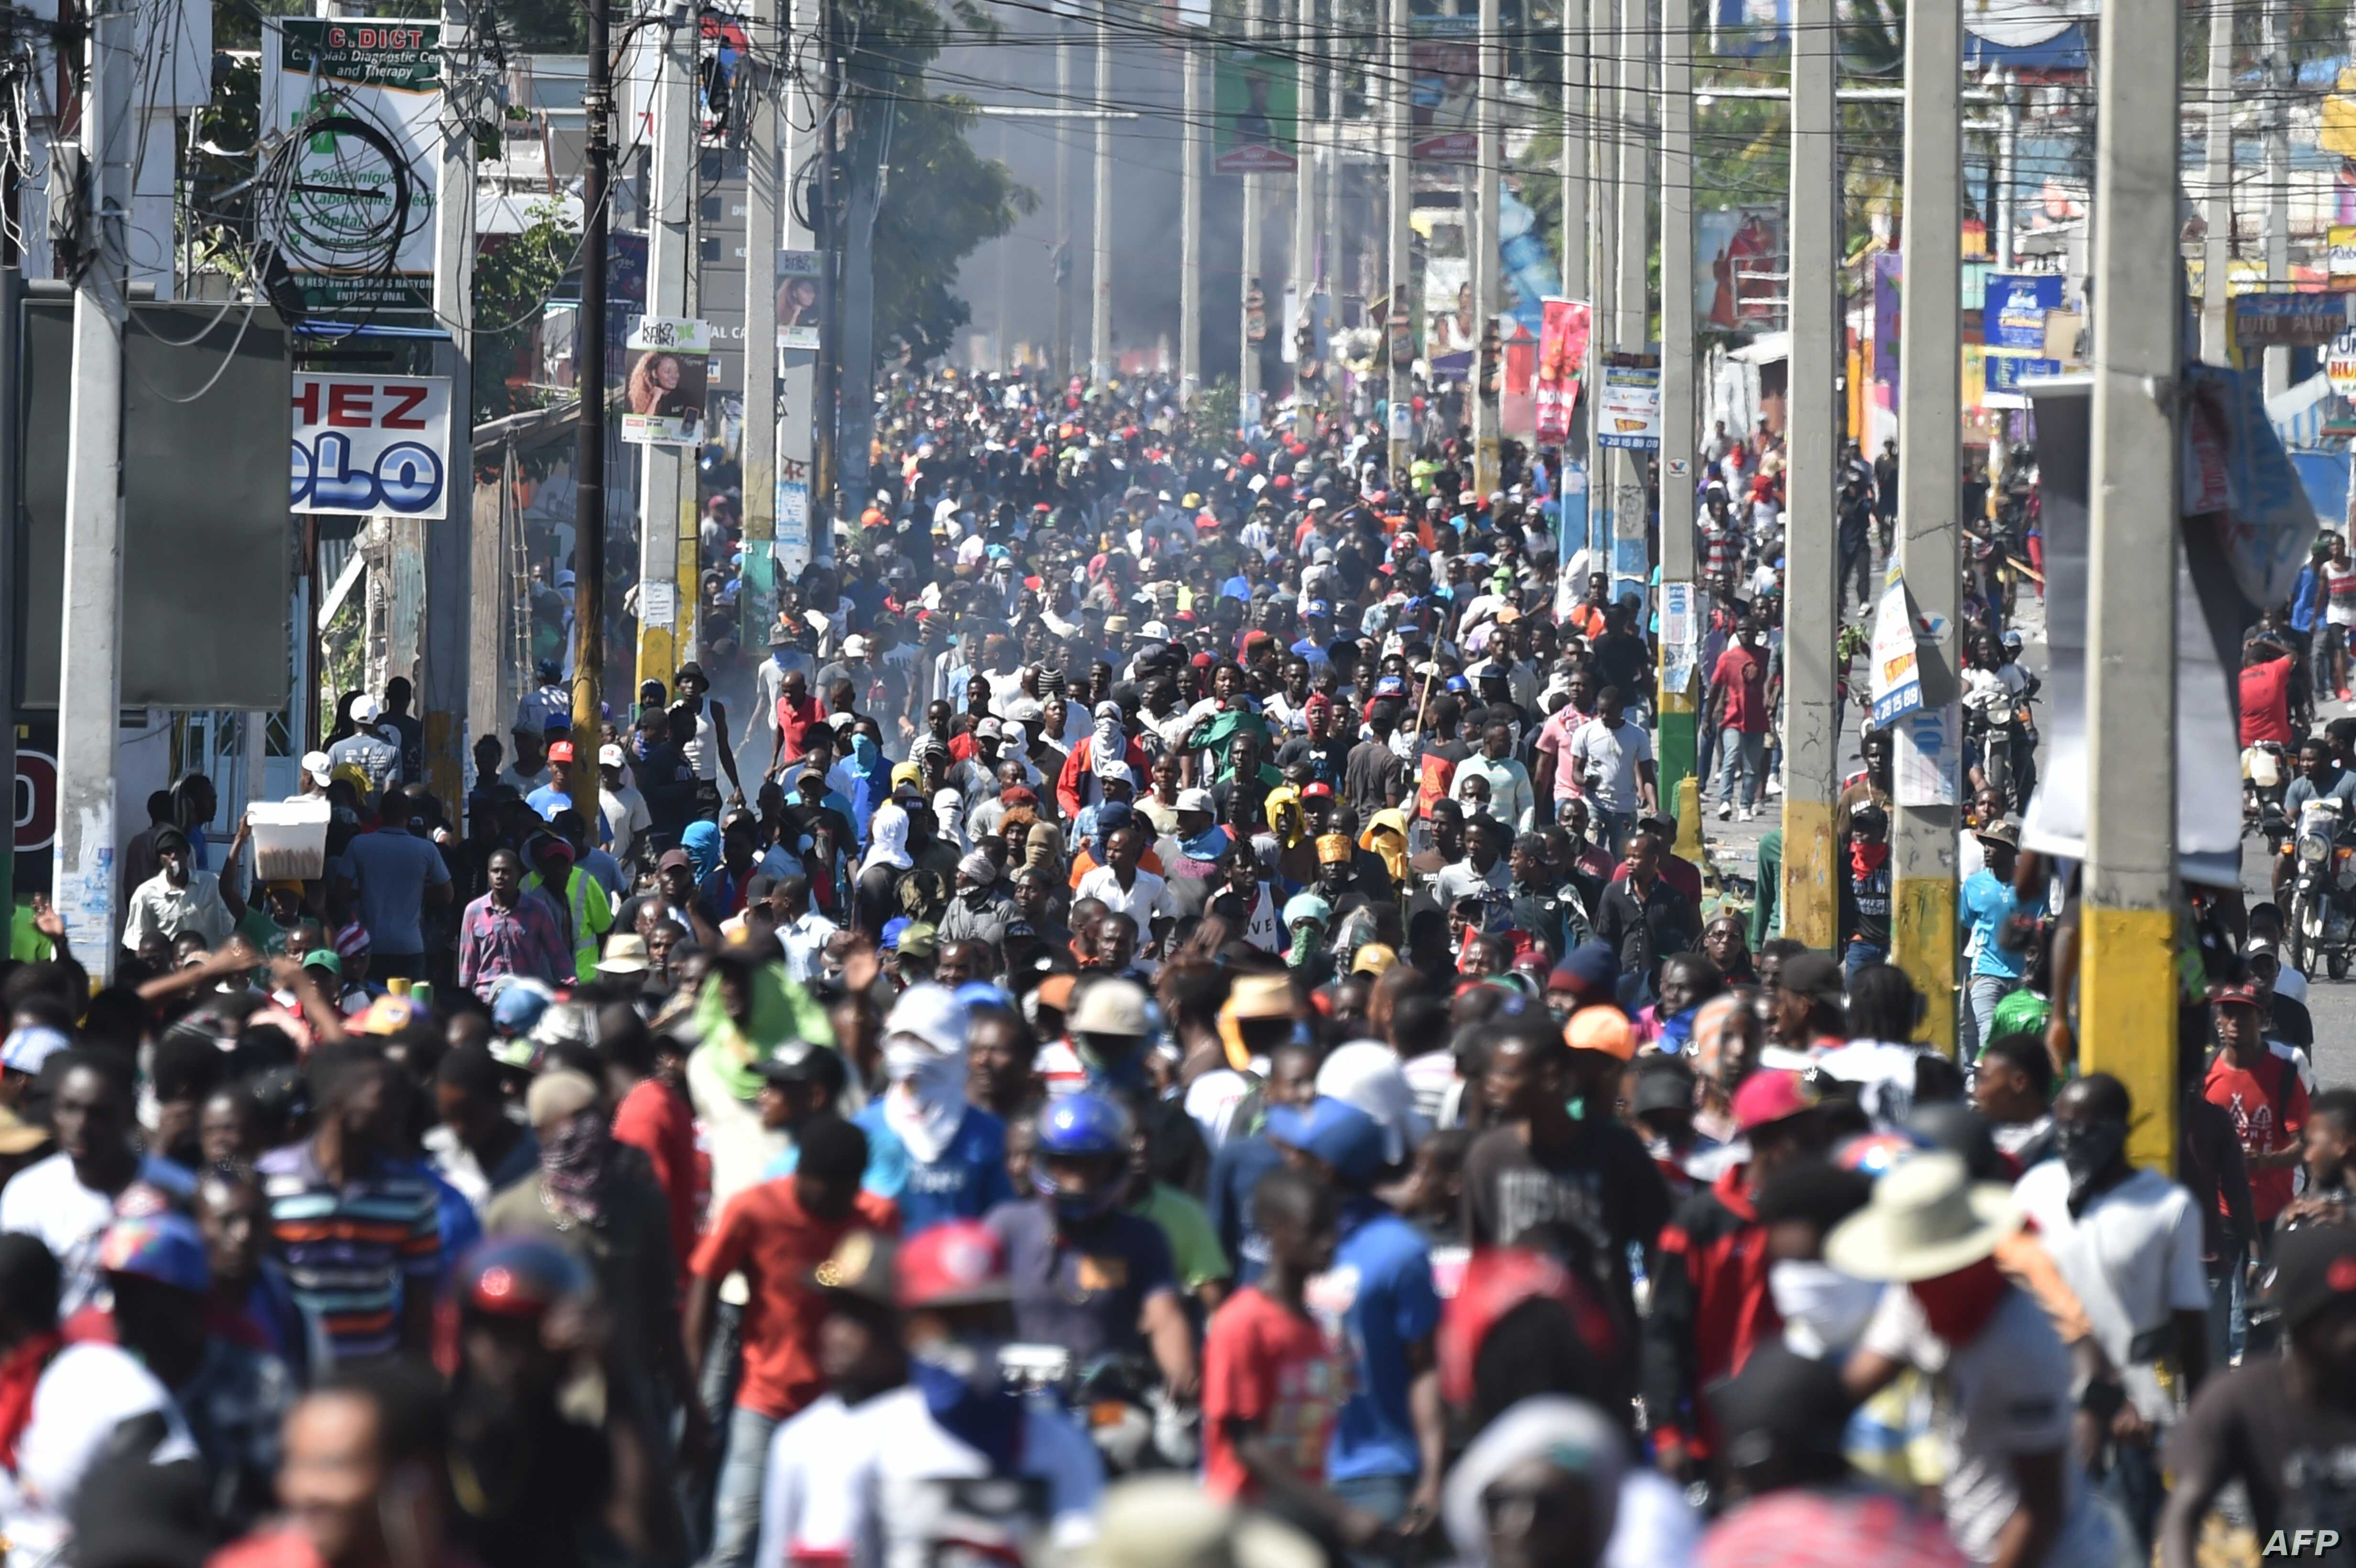 Demonstrators march on the streets on the fifth day of protests in Port-au-Prince, Feb. 11, 2019, against Haitian President Jovenel Moise and the misuse of PetroCaribe funds.